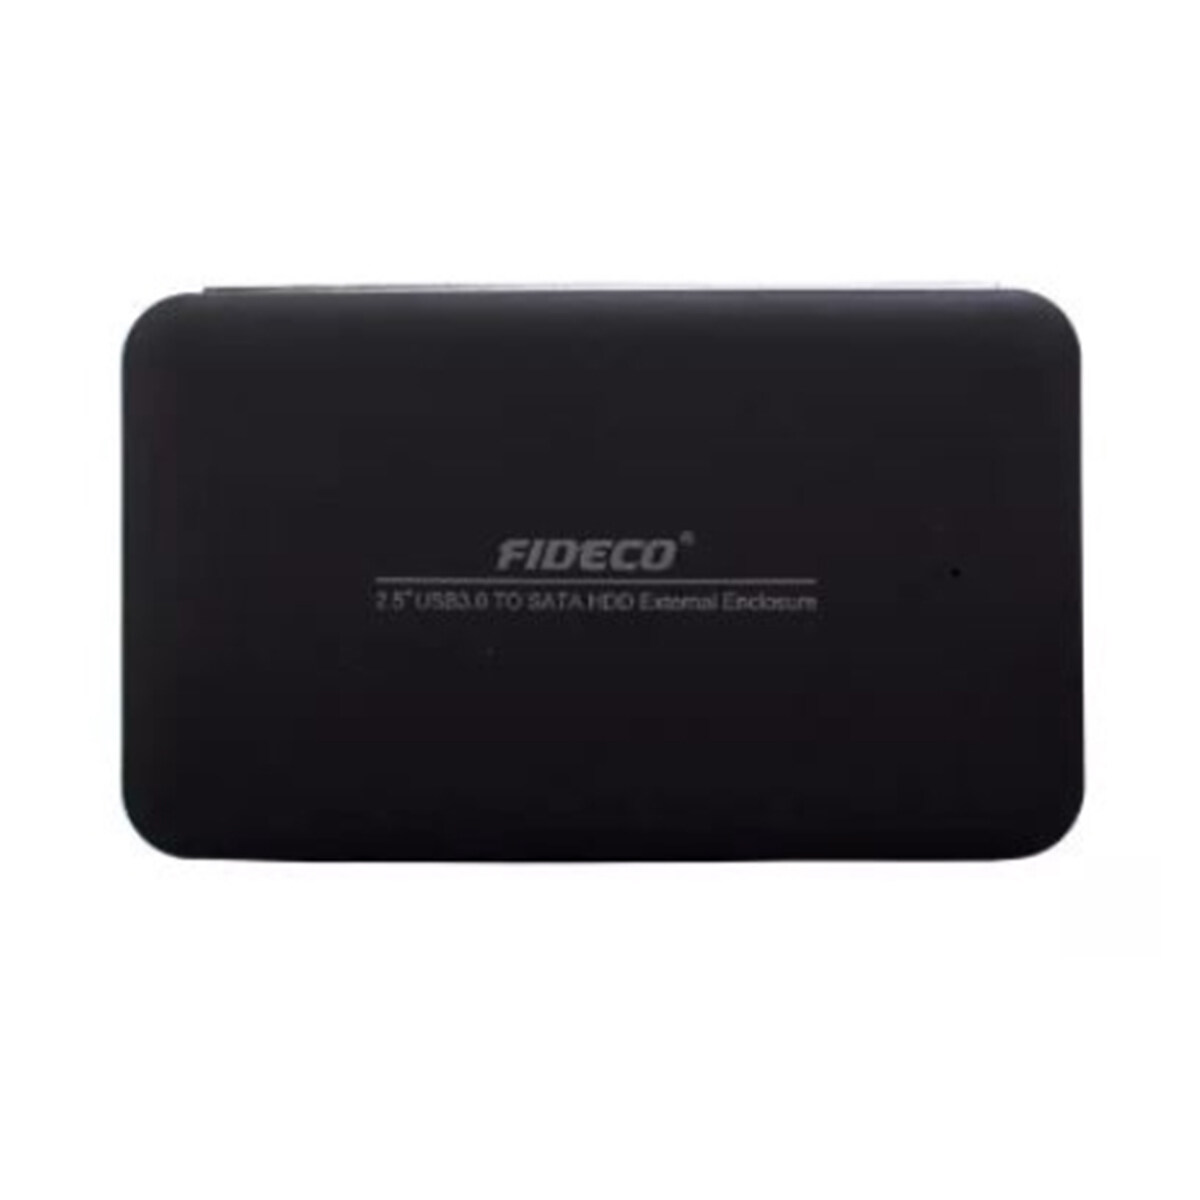 """Fideco 2.5"""" SATA Enclosure (MR171), USB 3.0 Up To 5Gbps Transfer Speed, Up To 1TB Capacity, Plug And Play"""